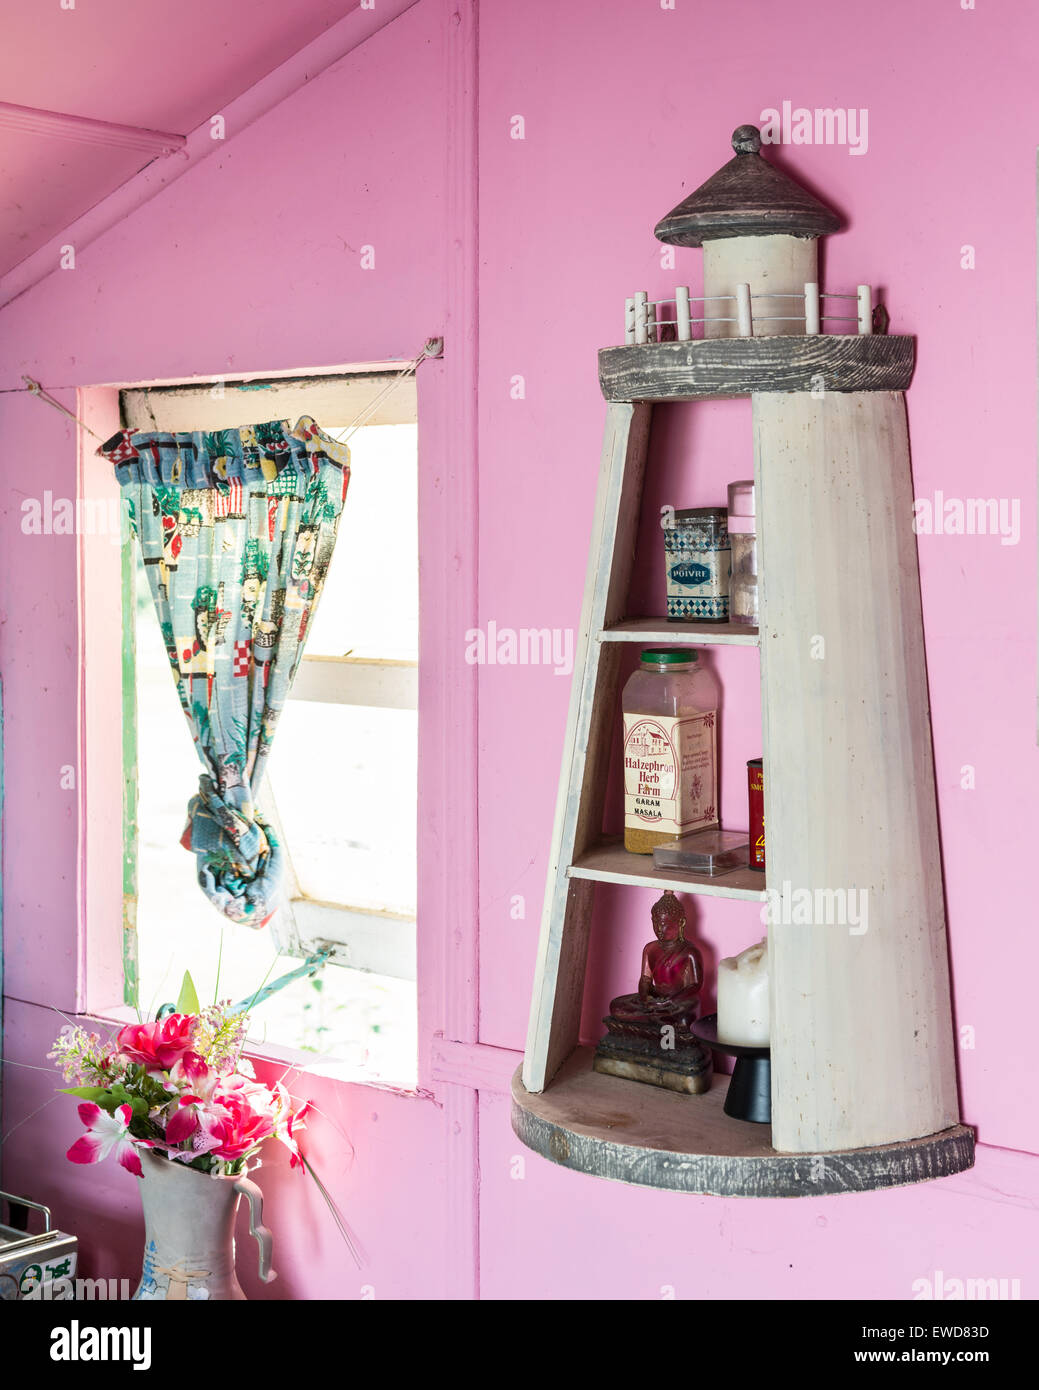 Lighthouse shaped shelf on pink wall of beach hut with vintage curtain - Stock Image